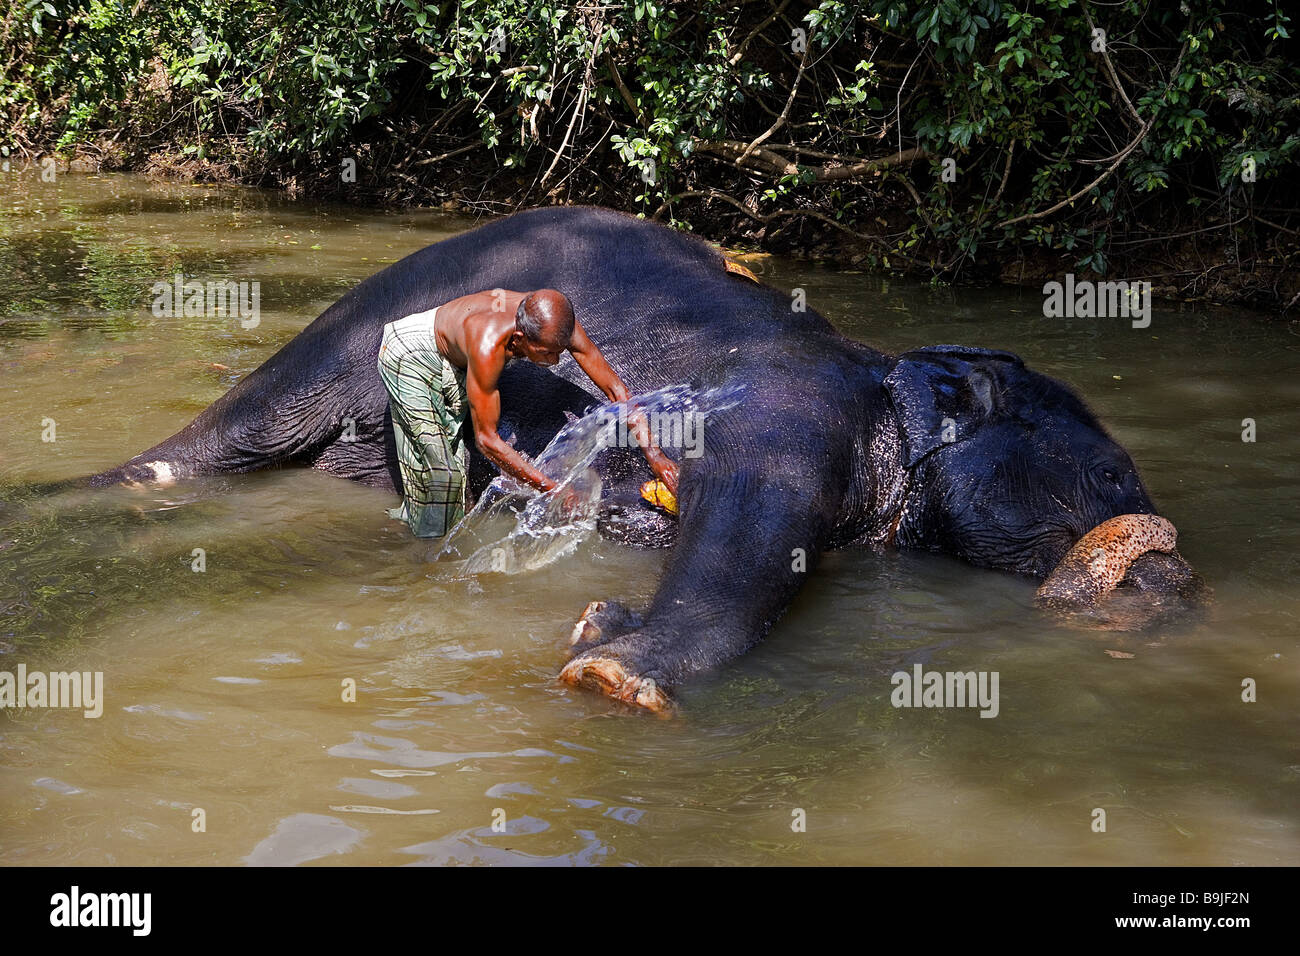 Sri Lanka River Man Elephant Asia Washes South Asia People